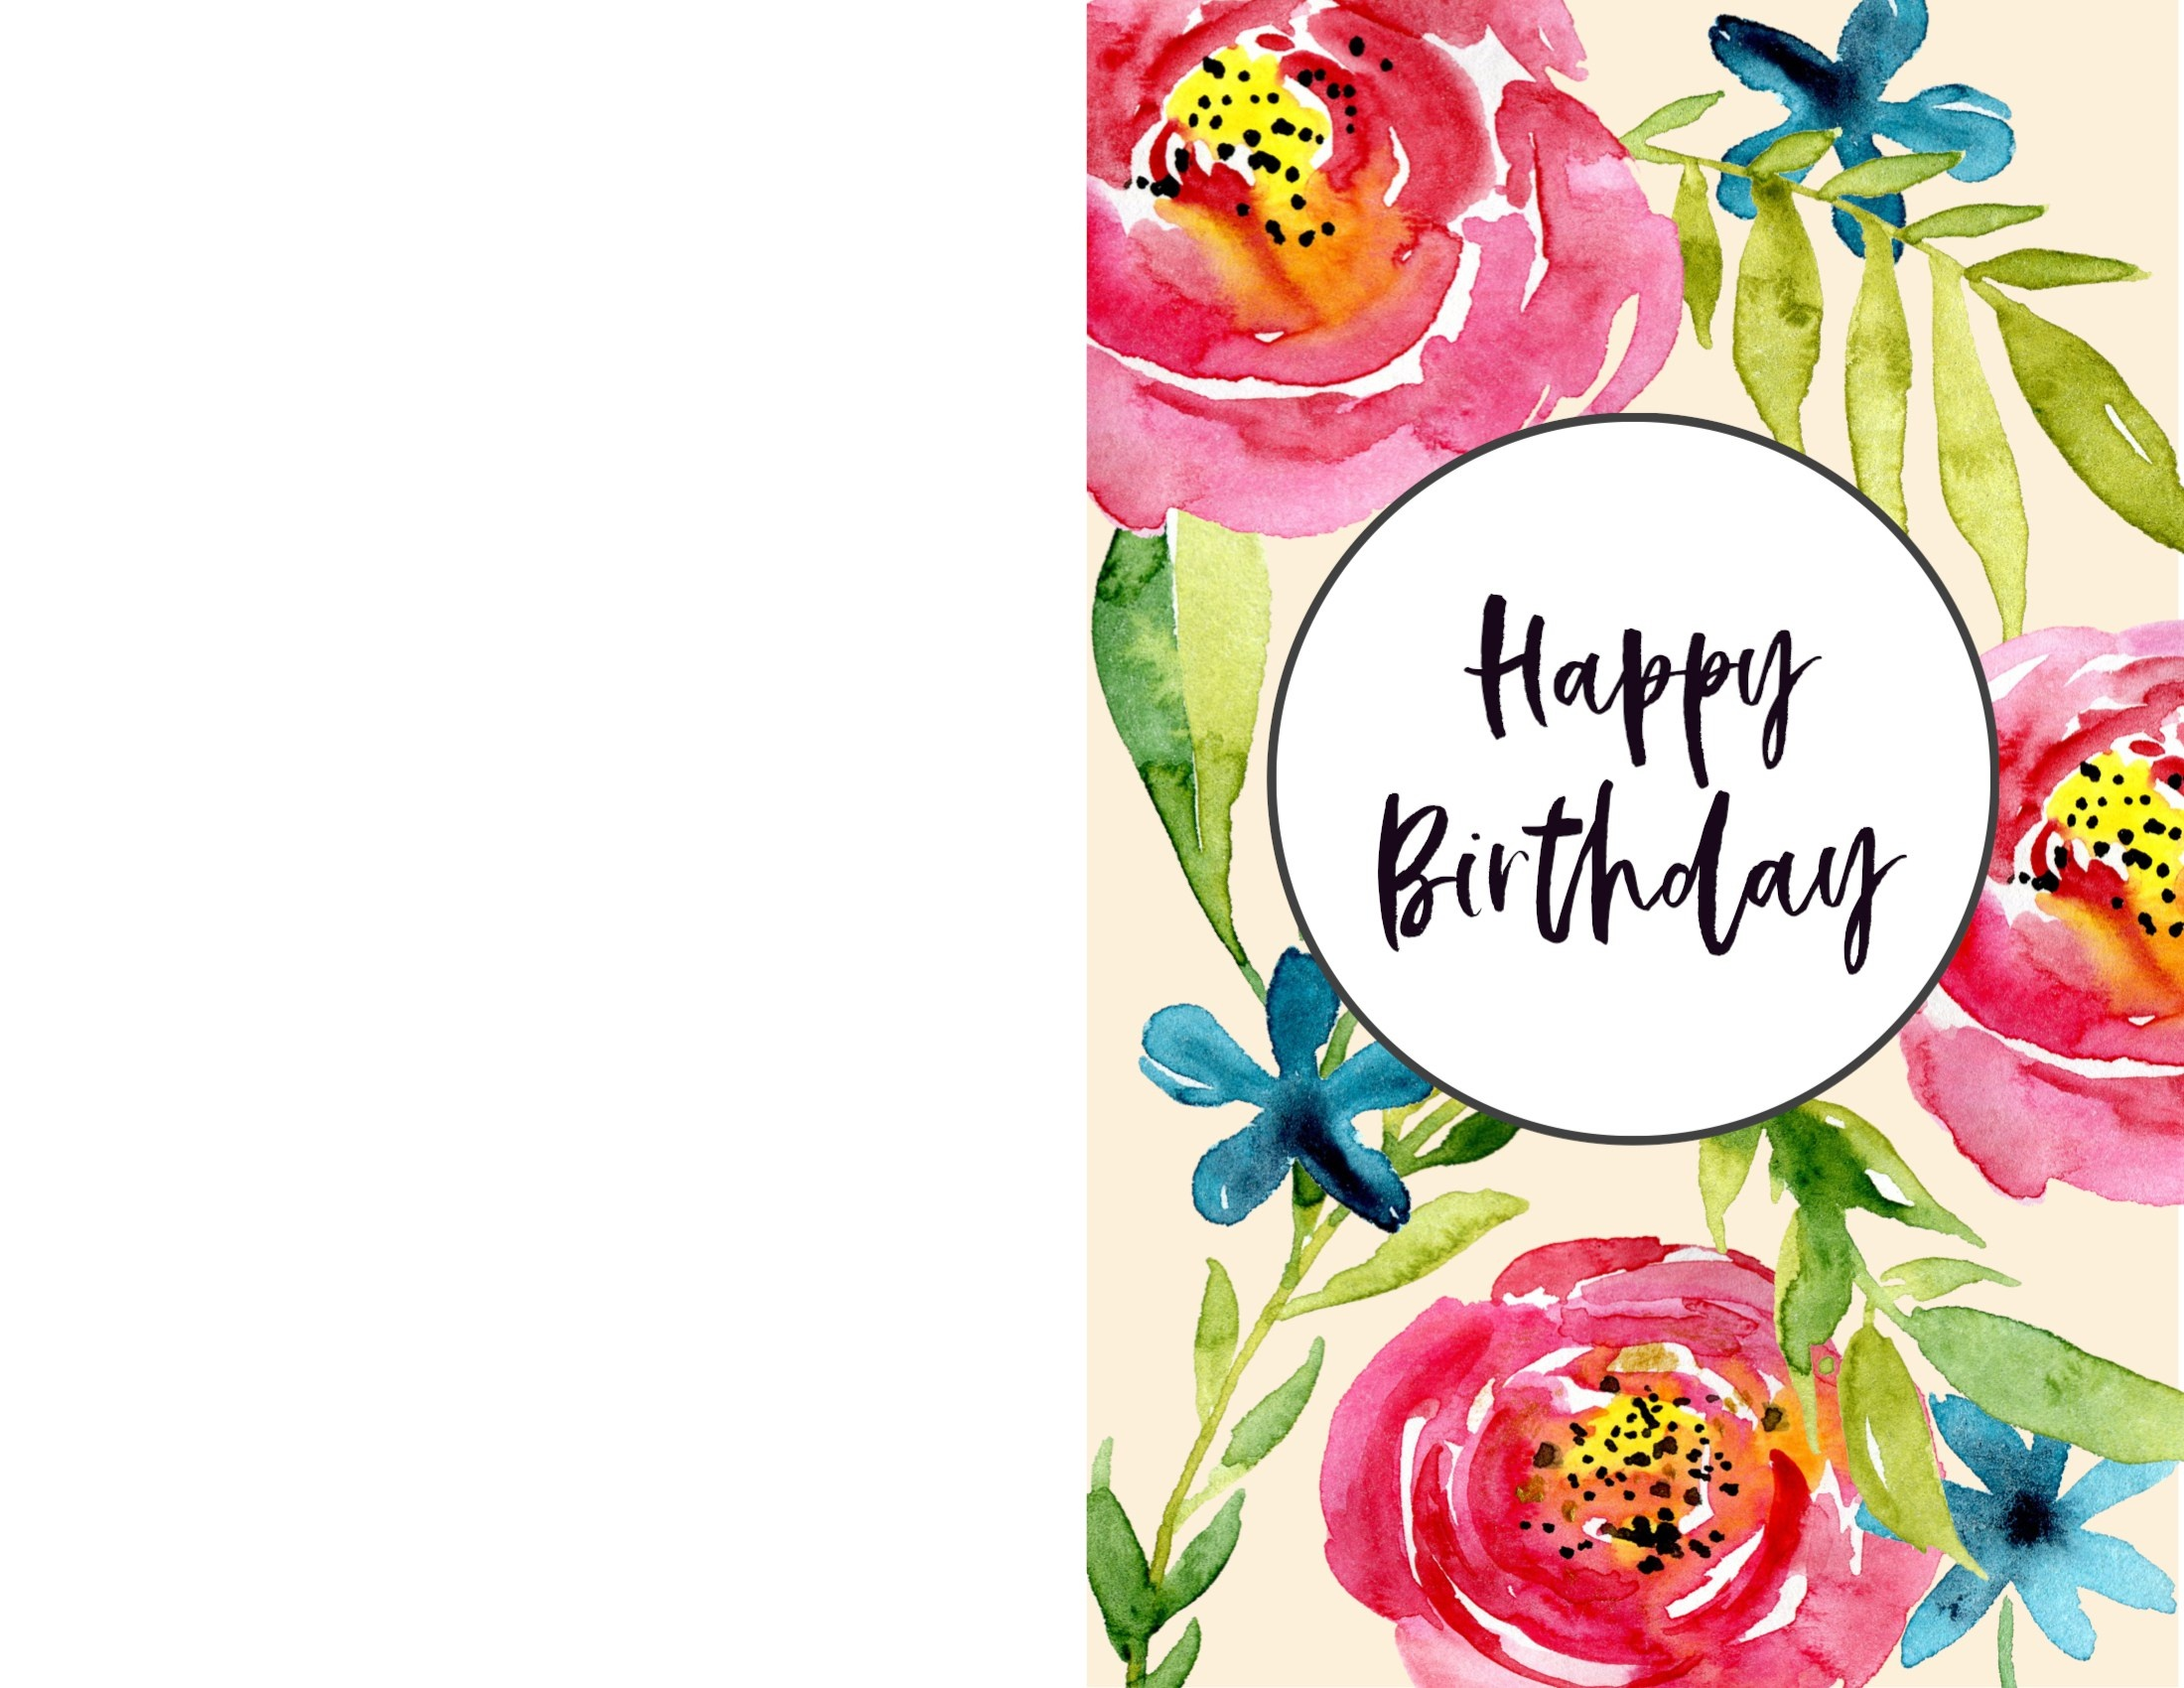 Free Printable Birthday Cards - Paper Trail Design - Free Printable Personalized Birthday Cards